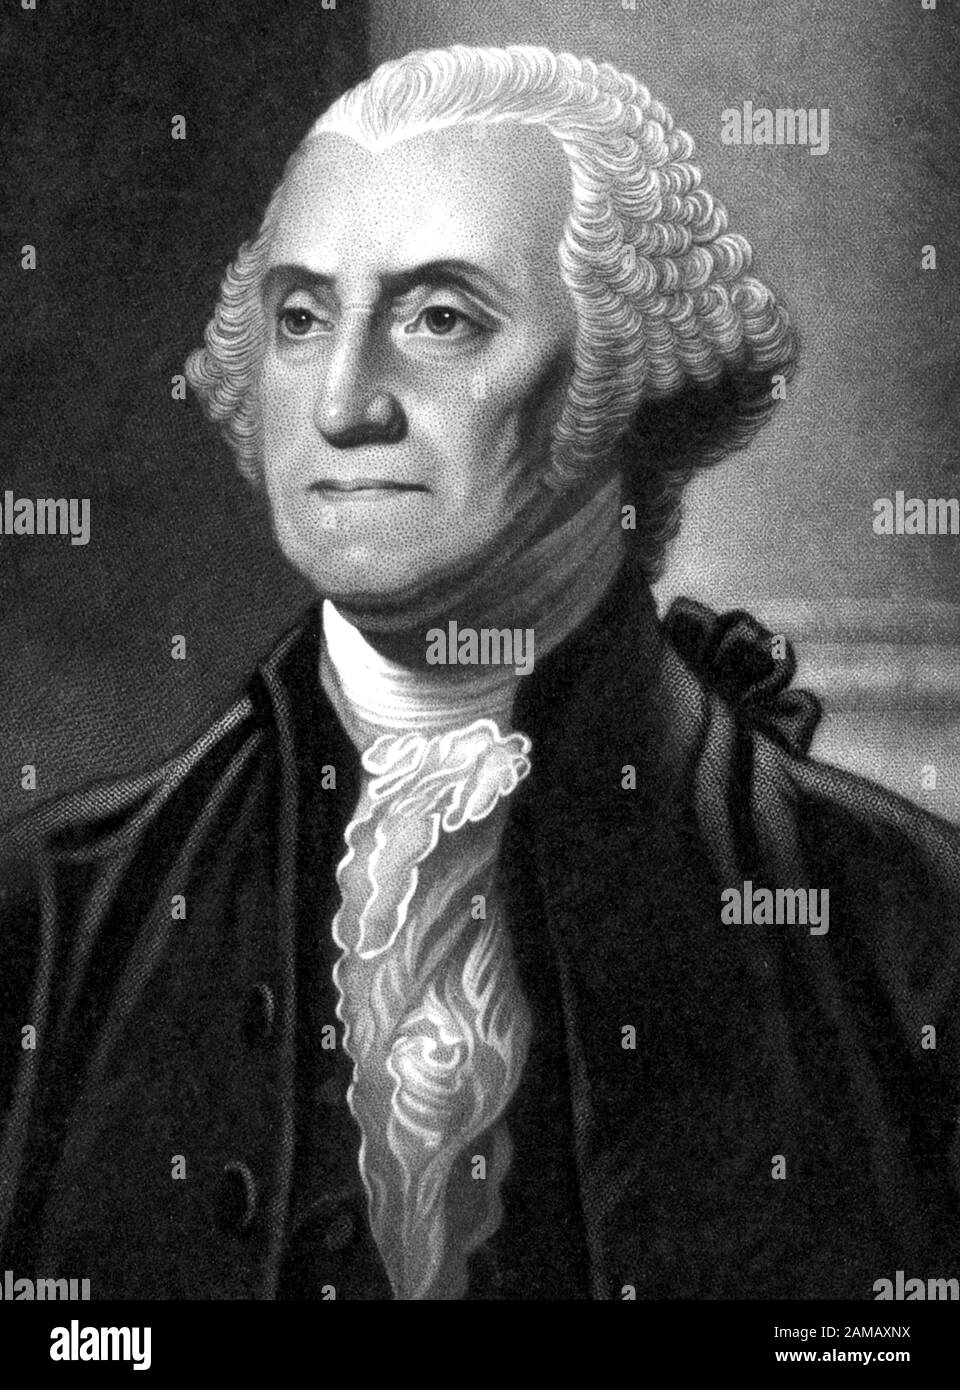 Vintage portrait of George Washington (1732 - 1799) – Commander of the Continental Army in the American Revolutionary War / War of Independence (1775 – 1783) and the first US President (1789 - 1797). Detail from a print circa 1844 by John Neale, from an engraving by Henry S Sadd based on a painting by artist Gilbert Stuart (1755 – 1828). Stock Photo